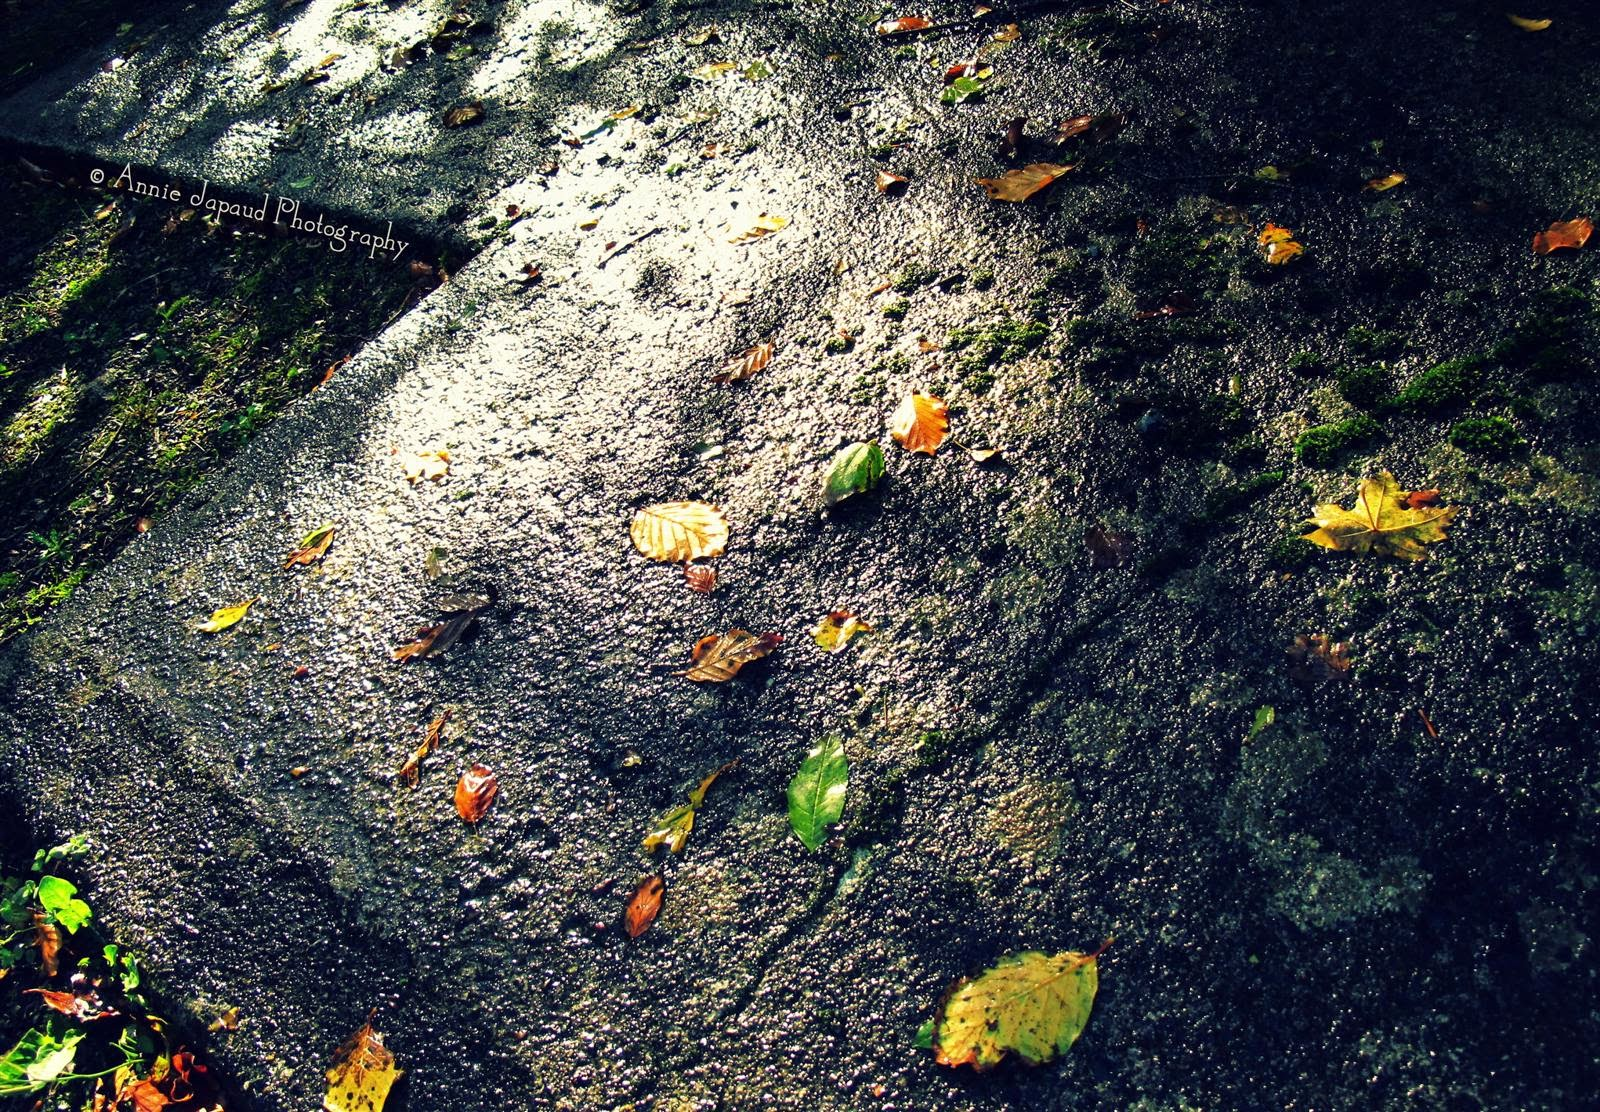 ground, leaves, shadows